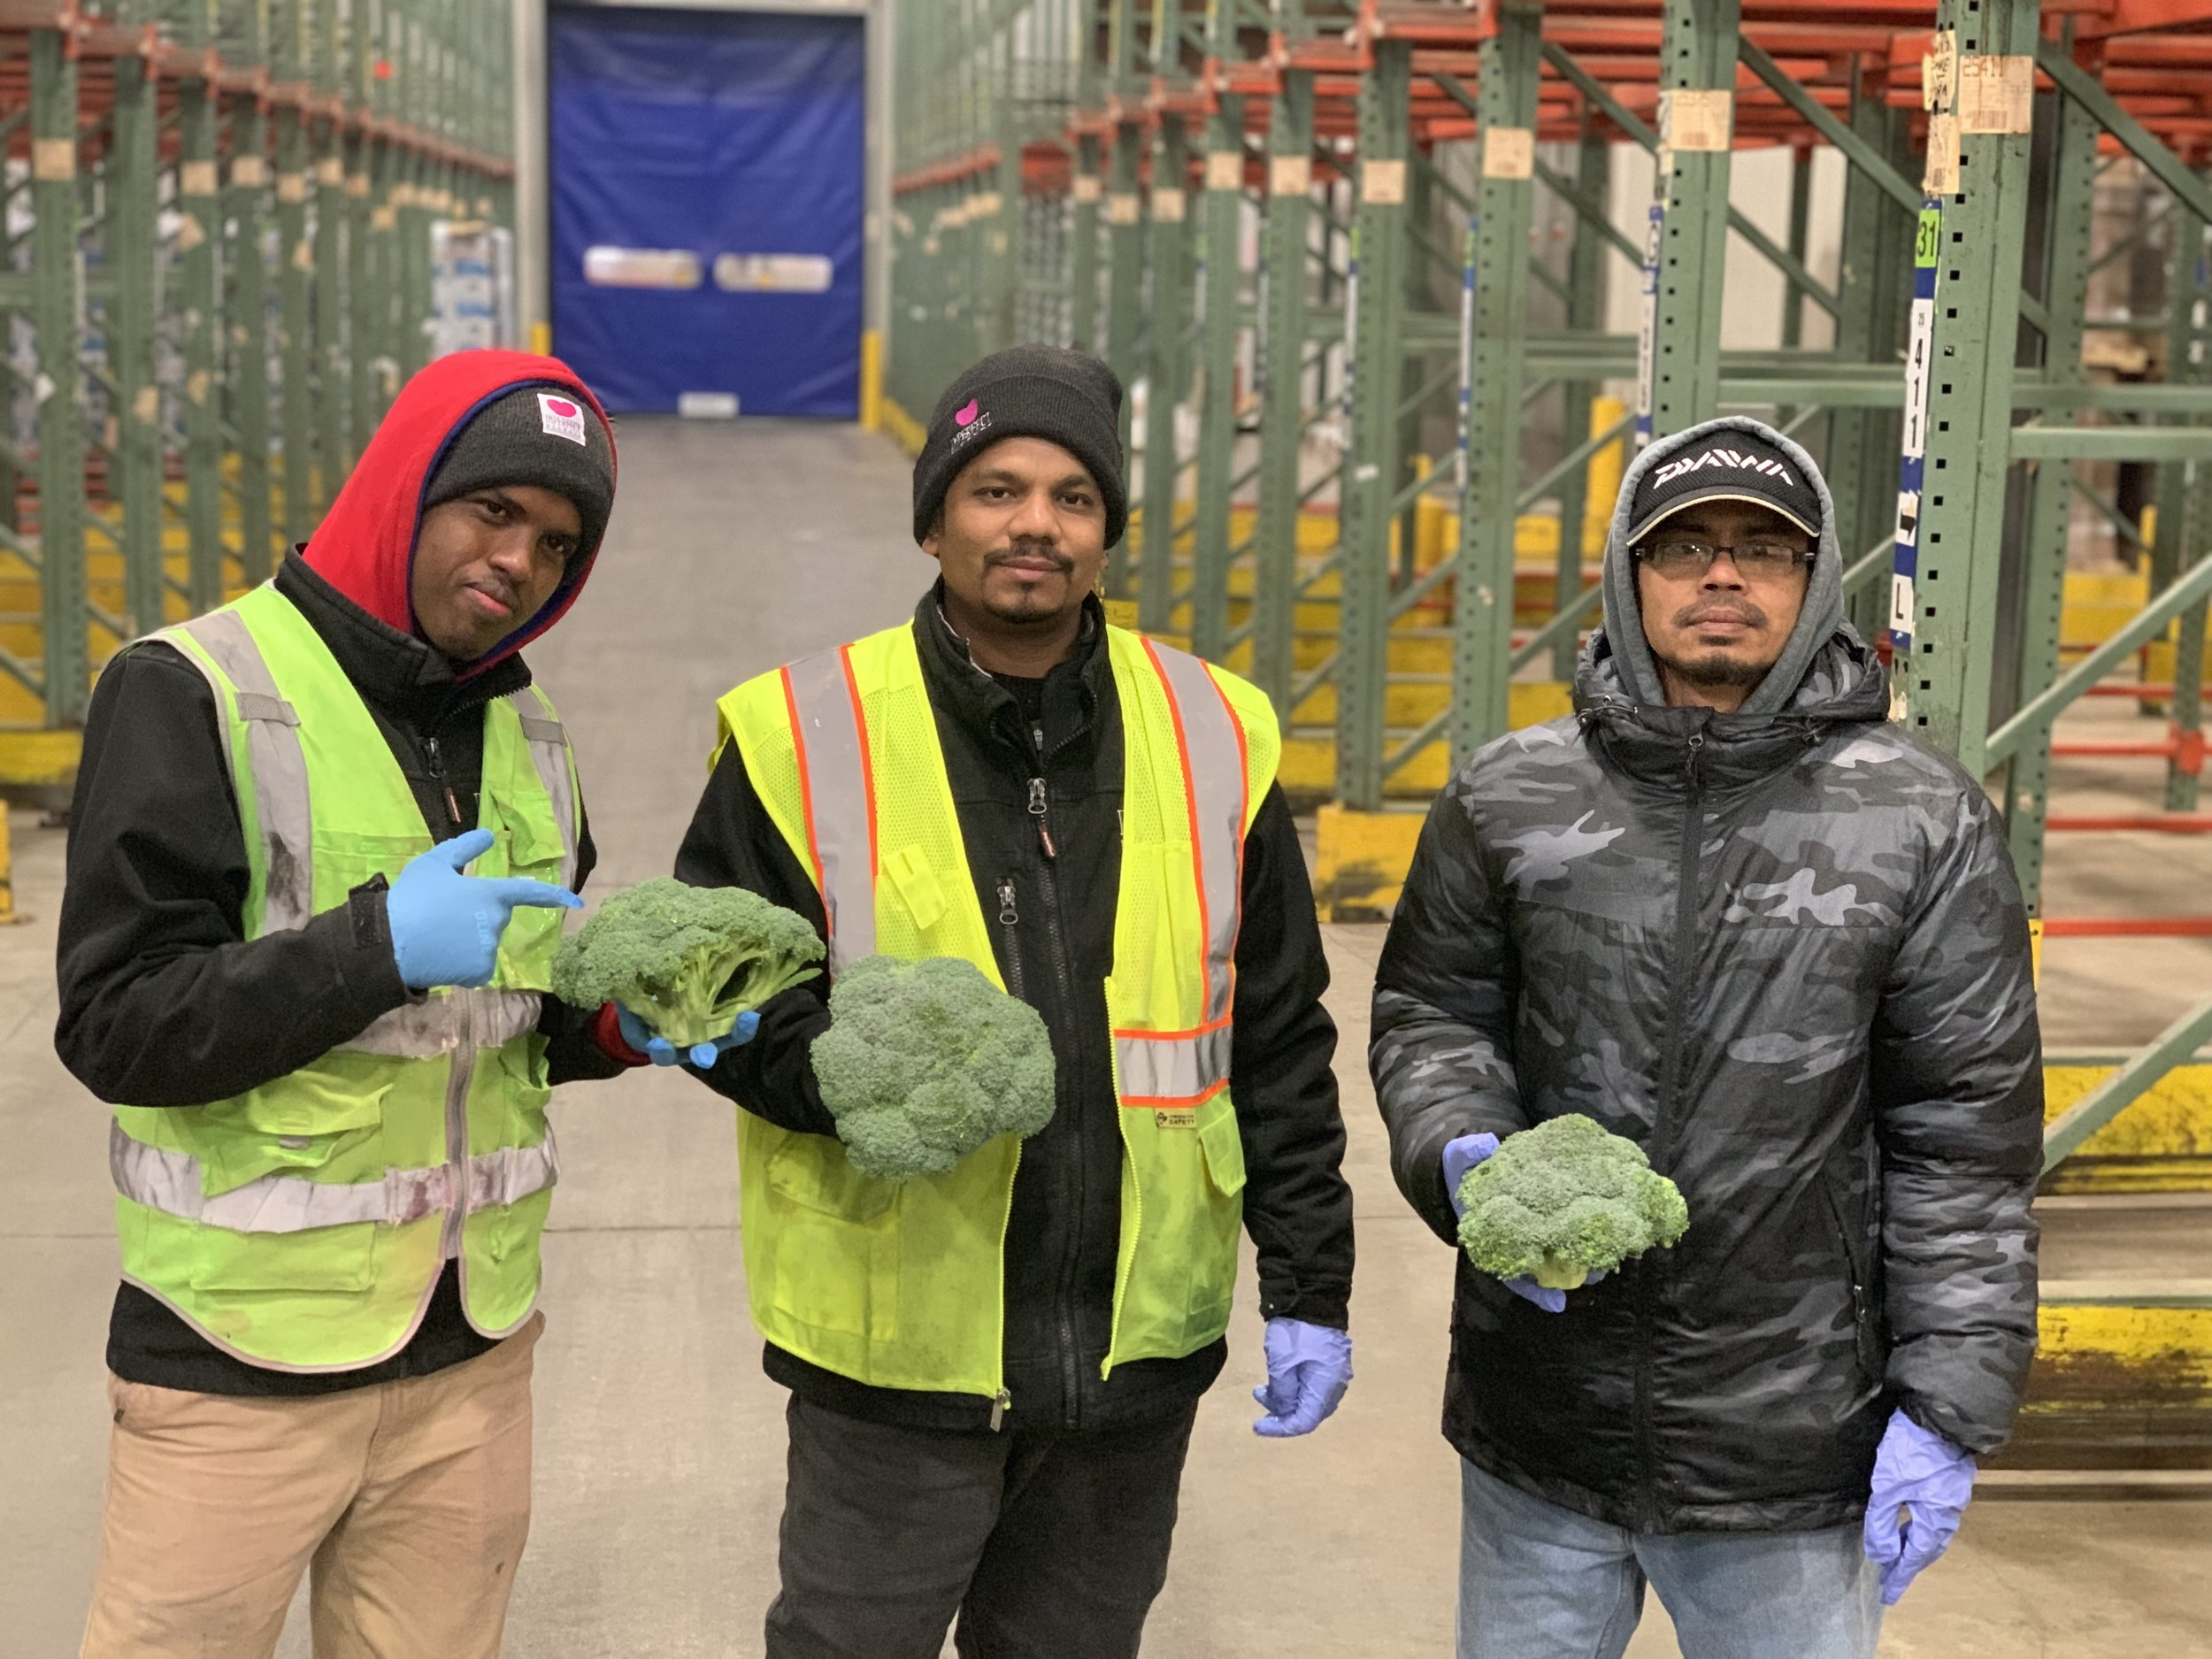 From left to right: Mohamed, Rafiq, Zakaria in our Chicago Warehouse